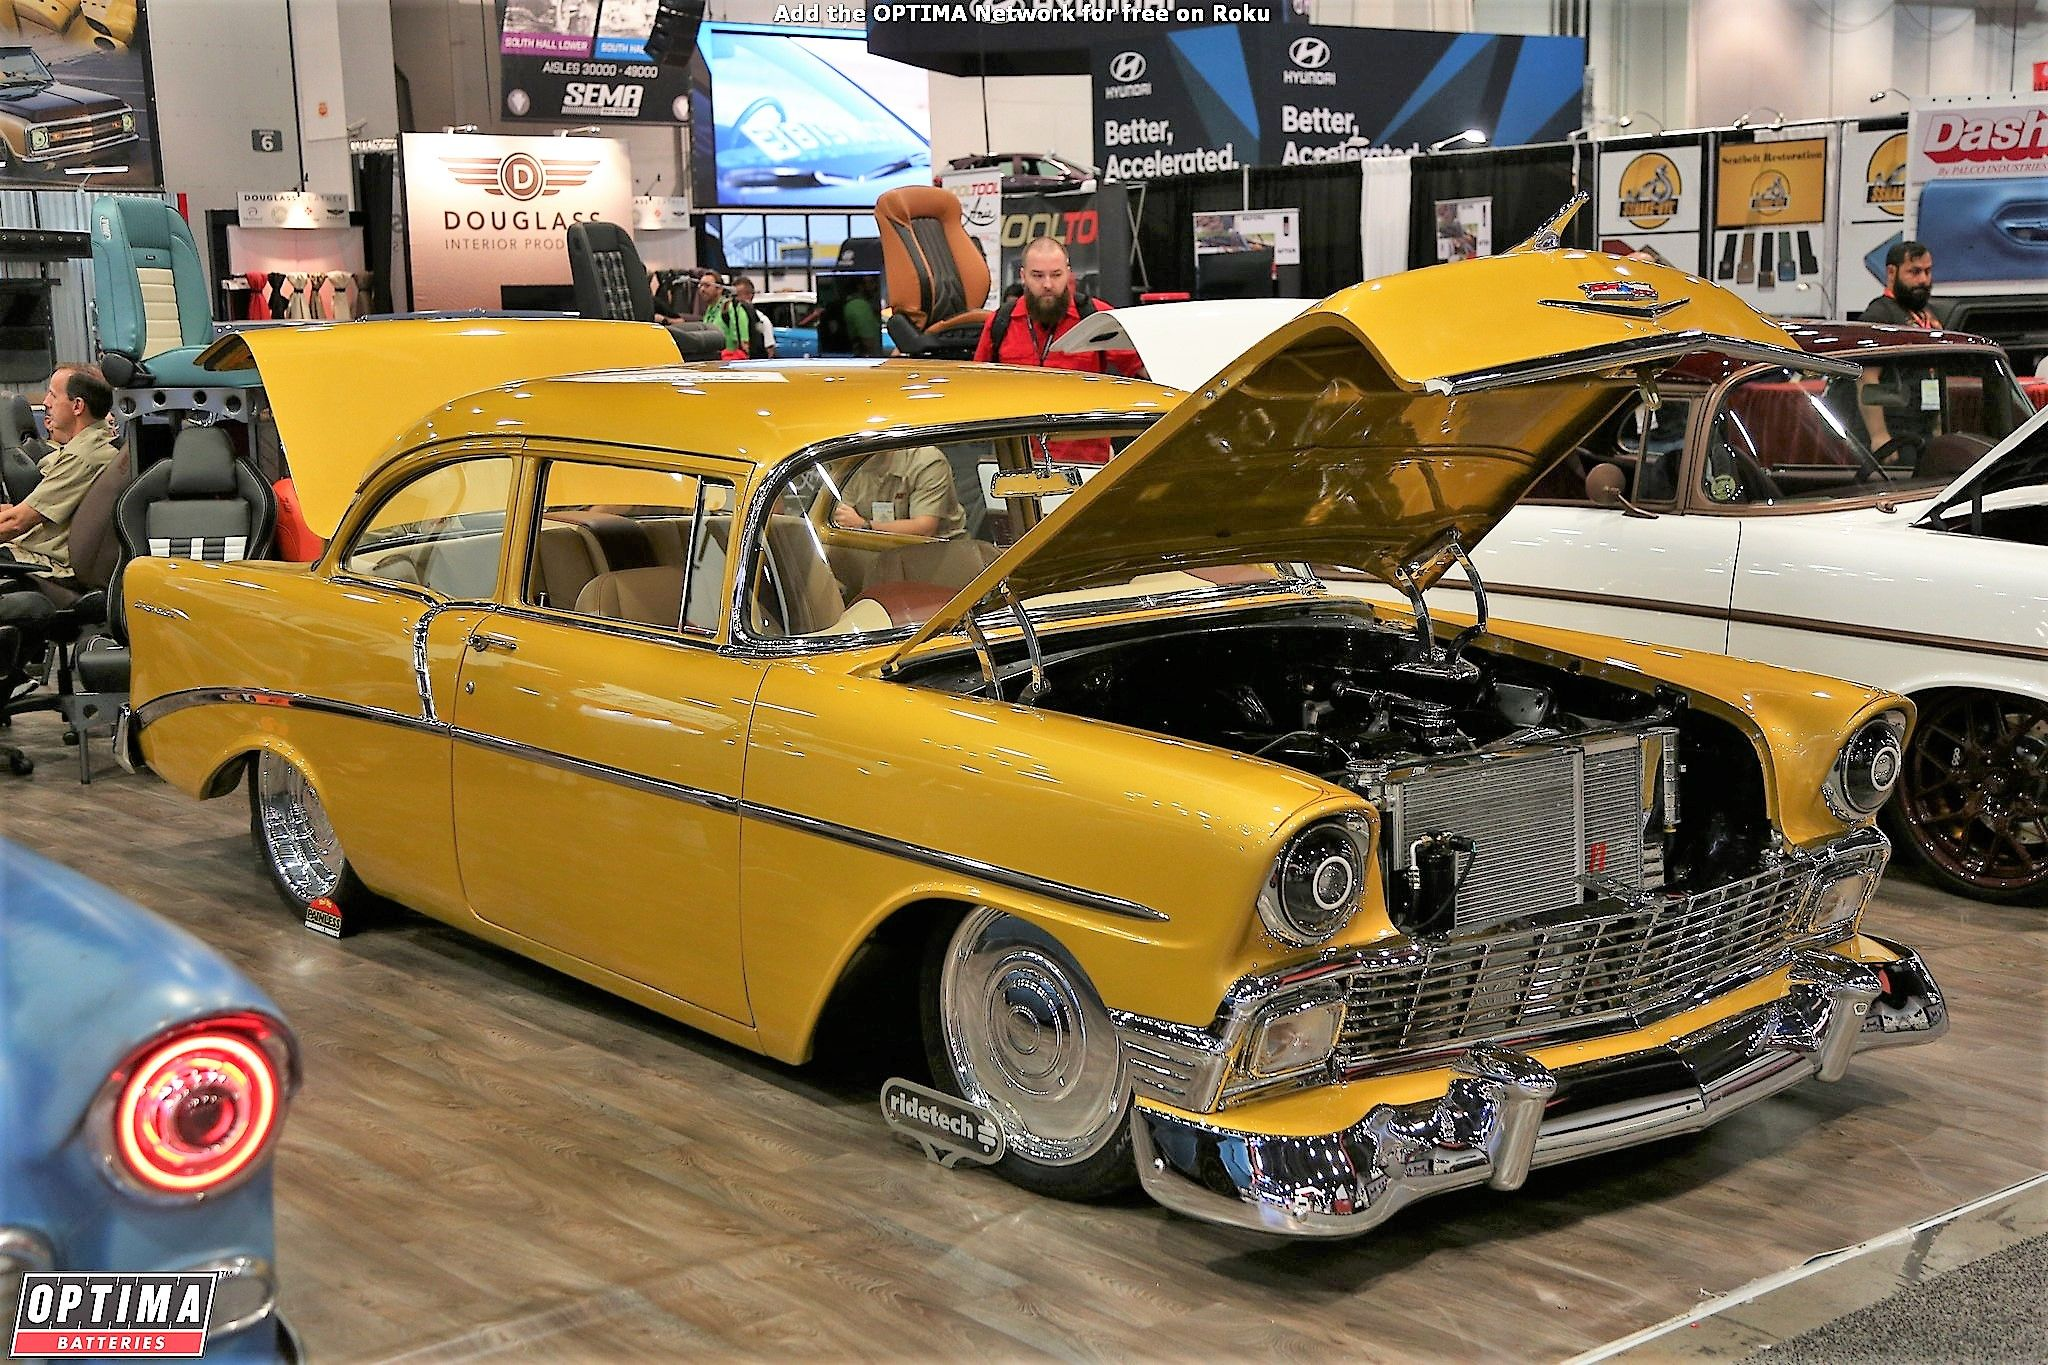 1955 Chevrolet Bel Air On Display At The 2017 Sema Show In Las Vegas 1955 Chevy Bel Air Chevy Bel Air Bel Air